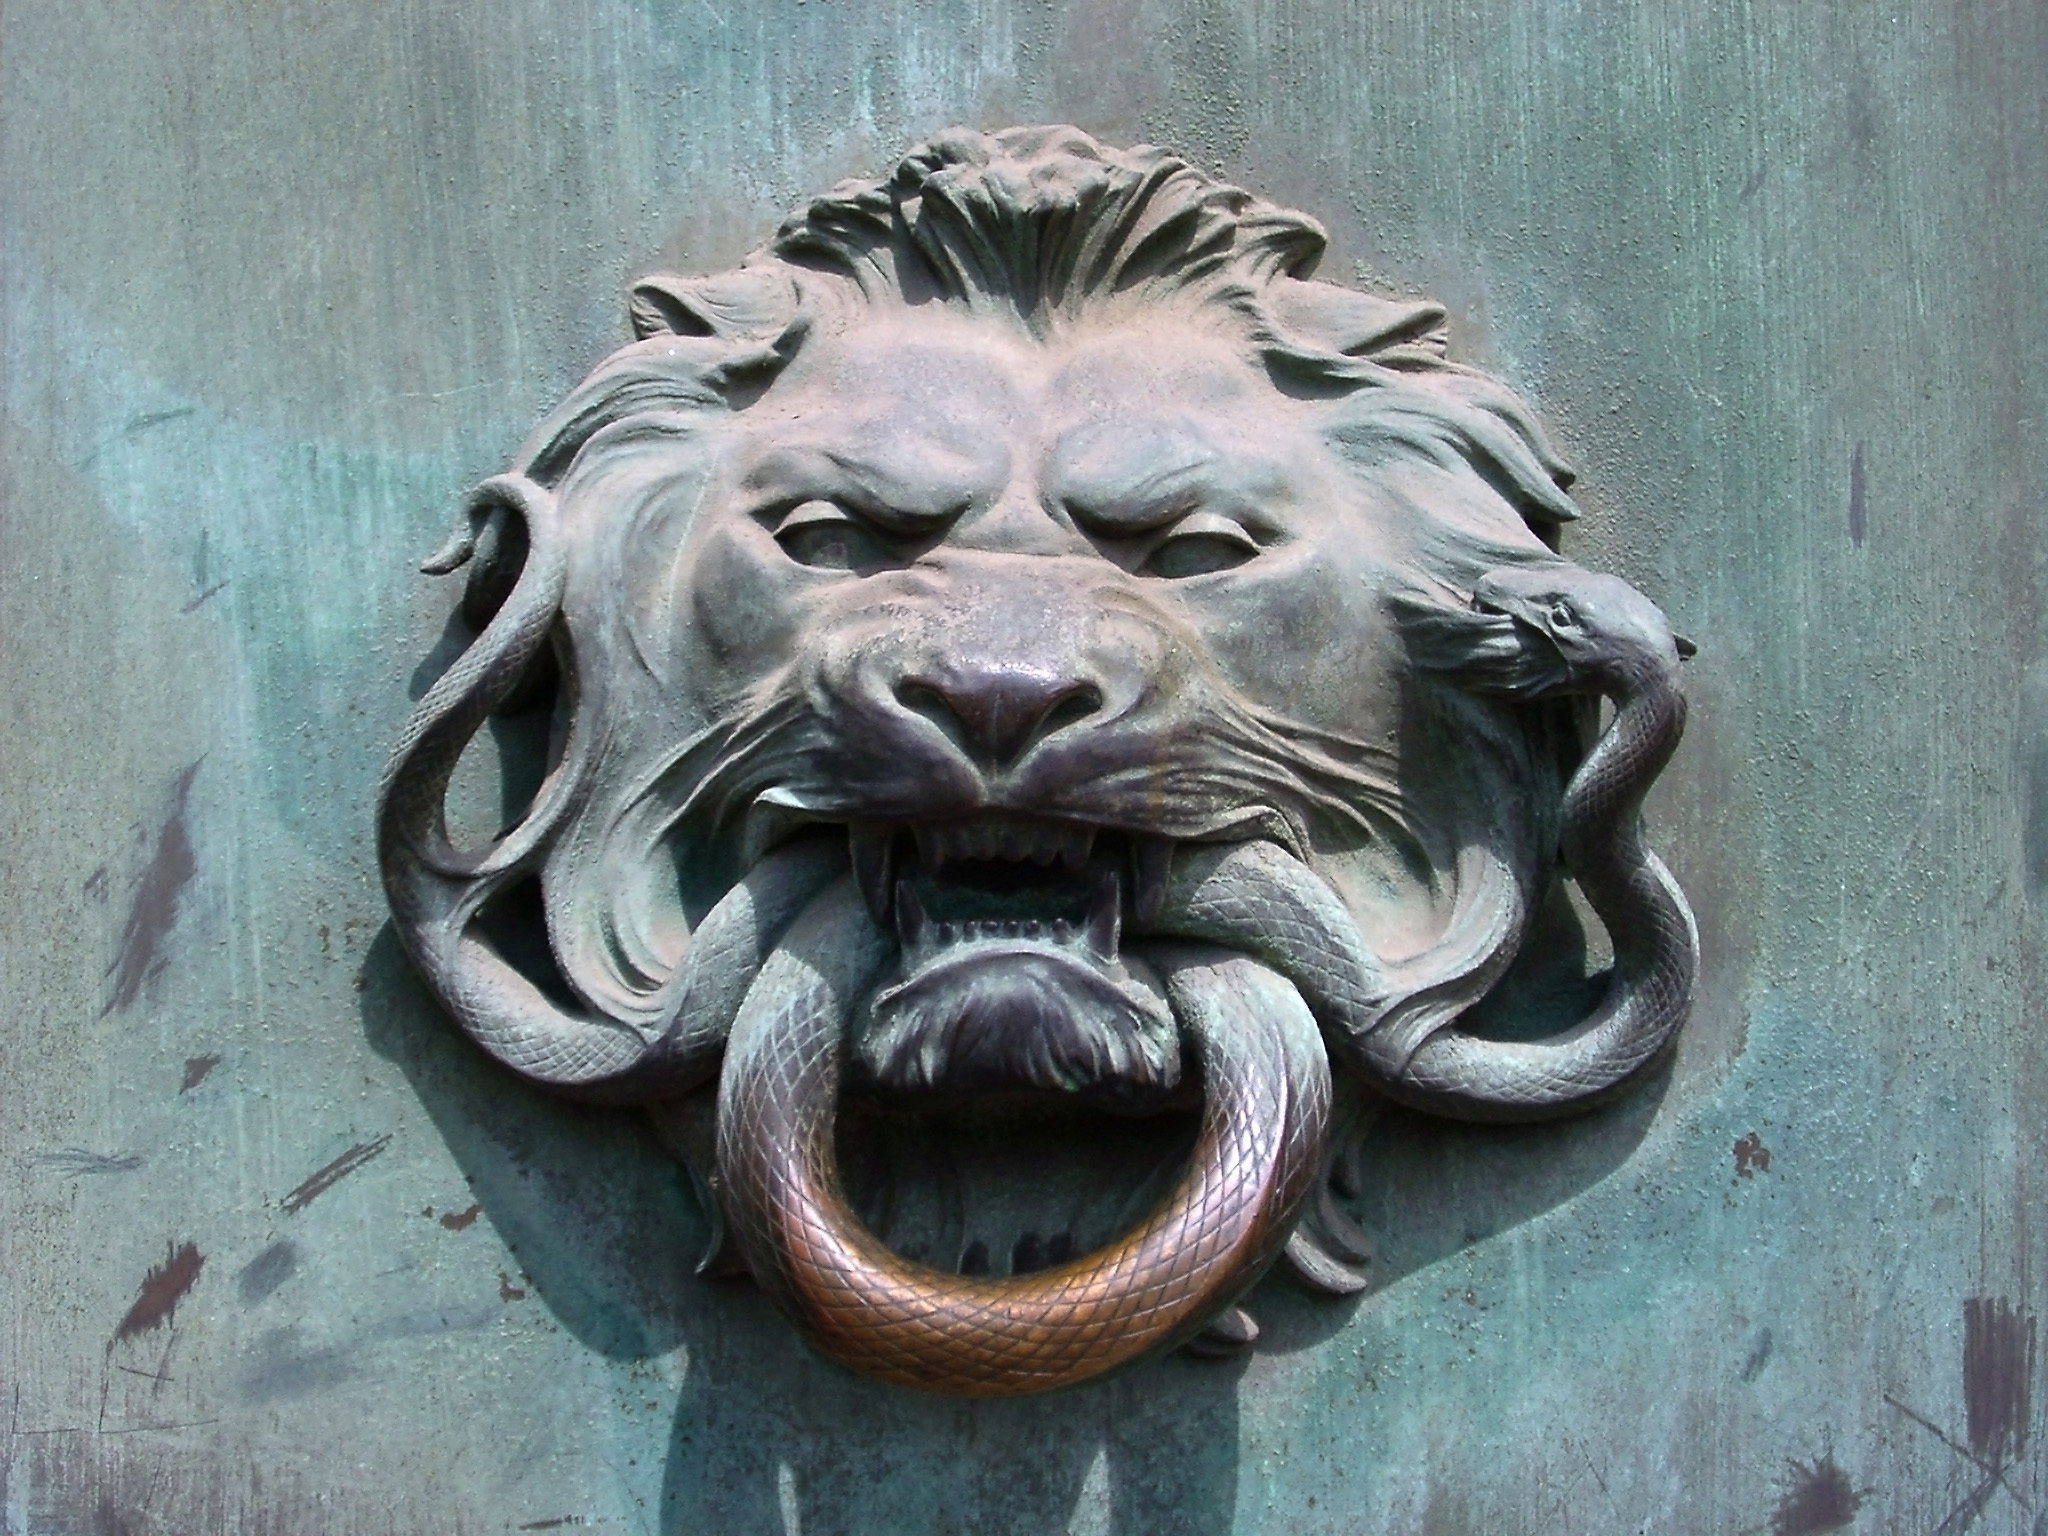 Detail of a door knocker of a lions head with a ring in its mouth on a door in Paris